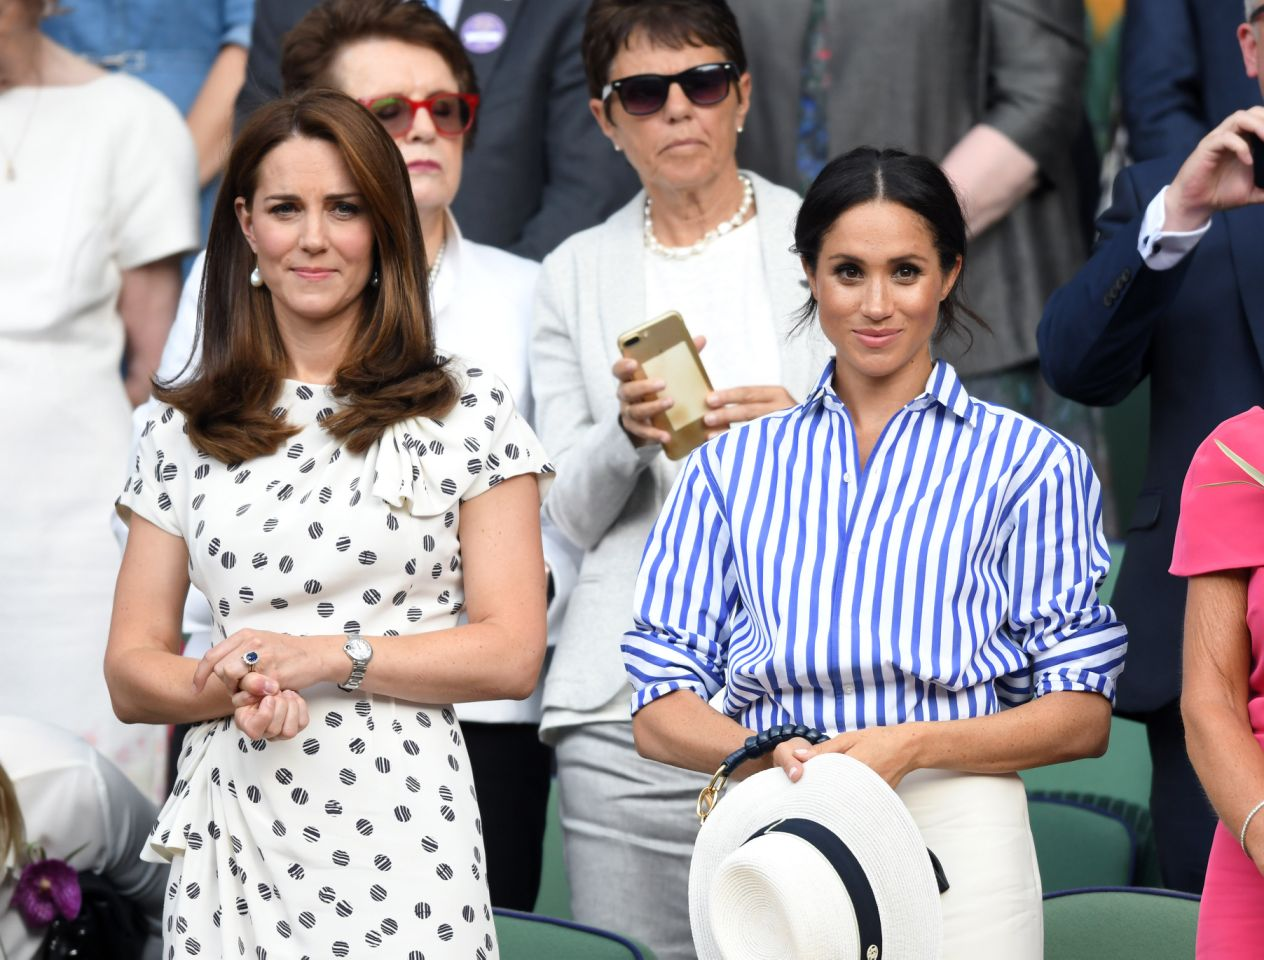 Tension may be due to the fact Kate Middleton and Meghan Markle supposedly don't get along Source Getty